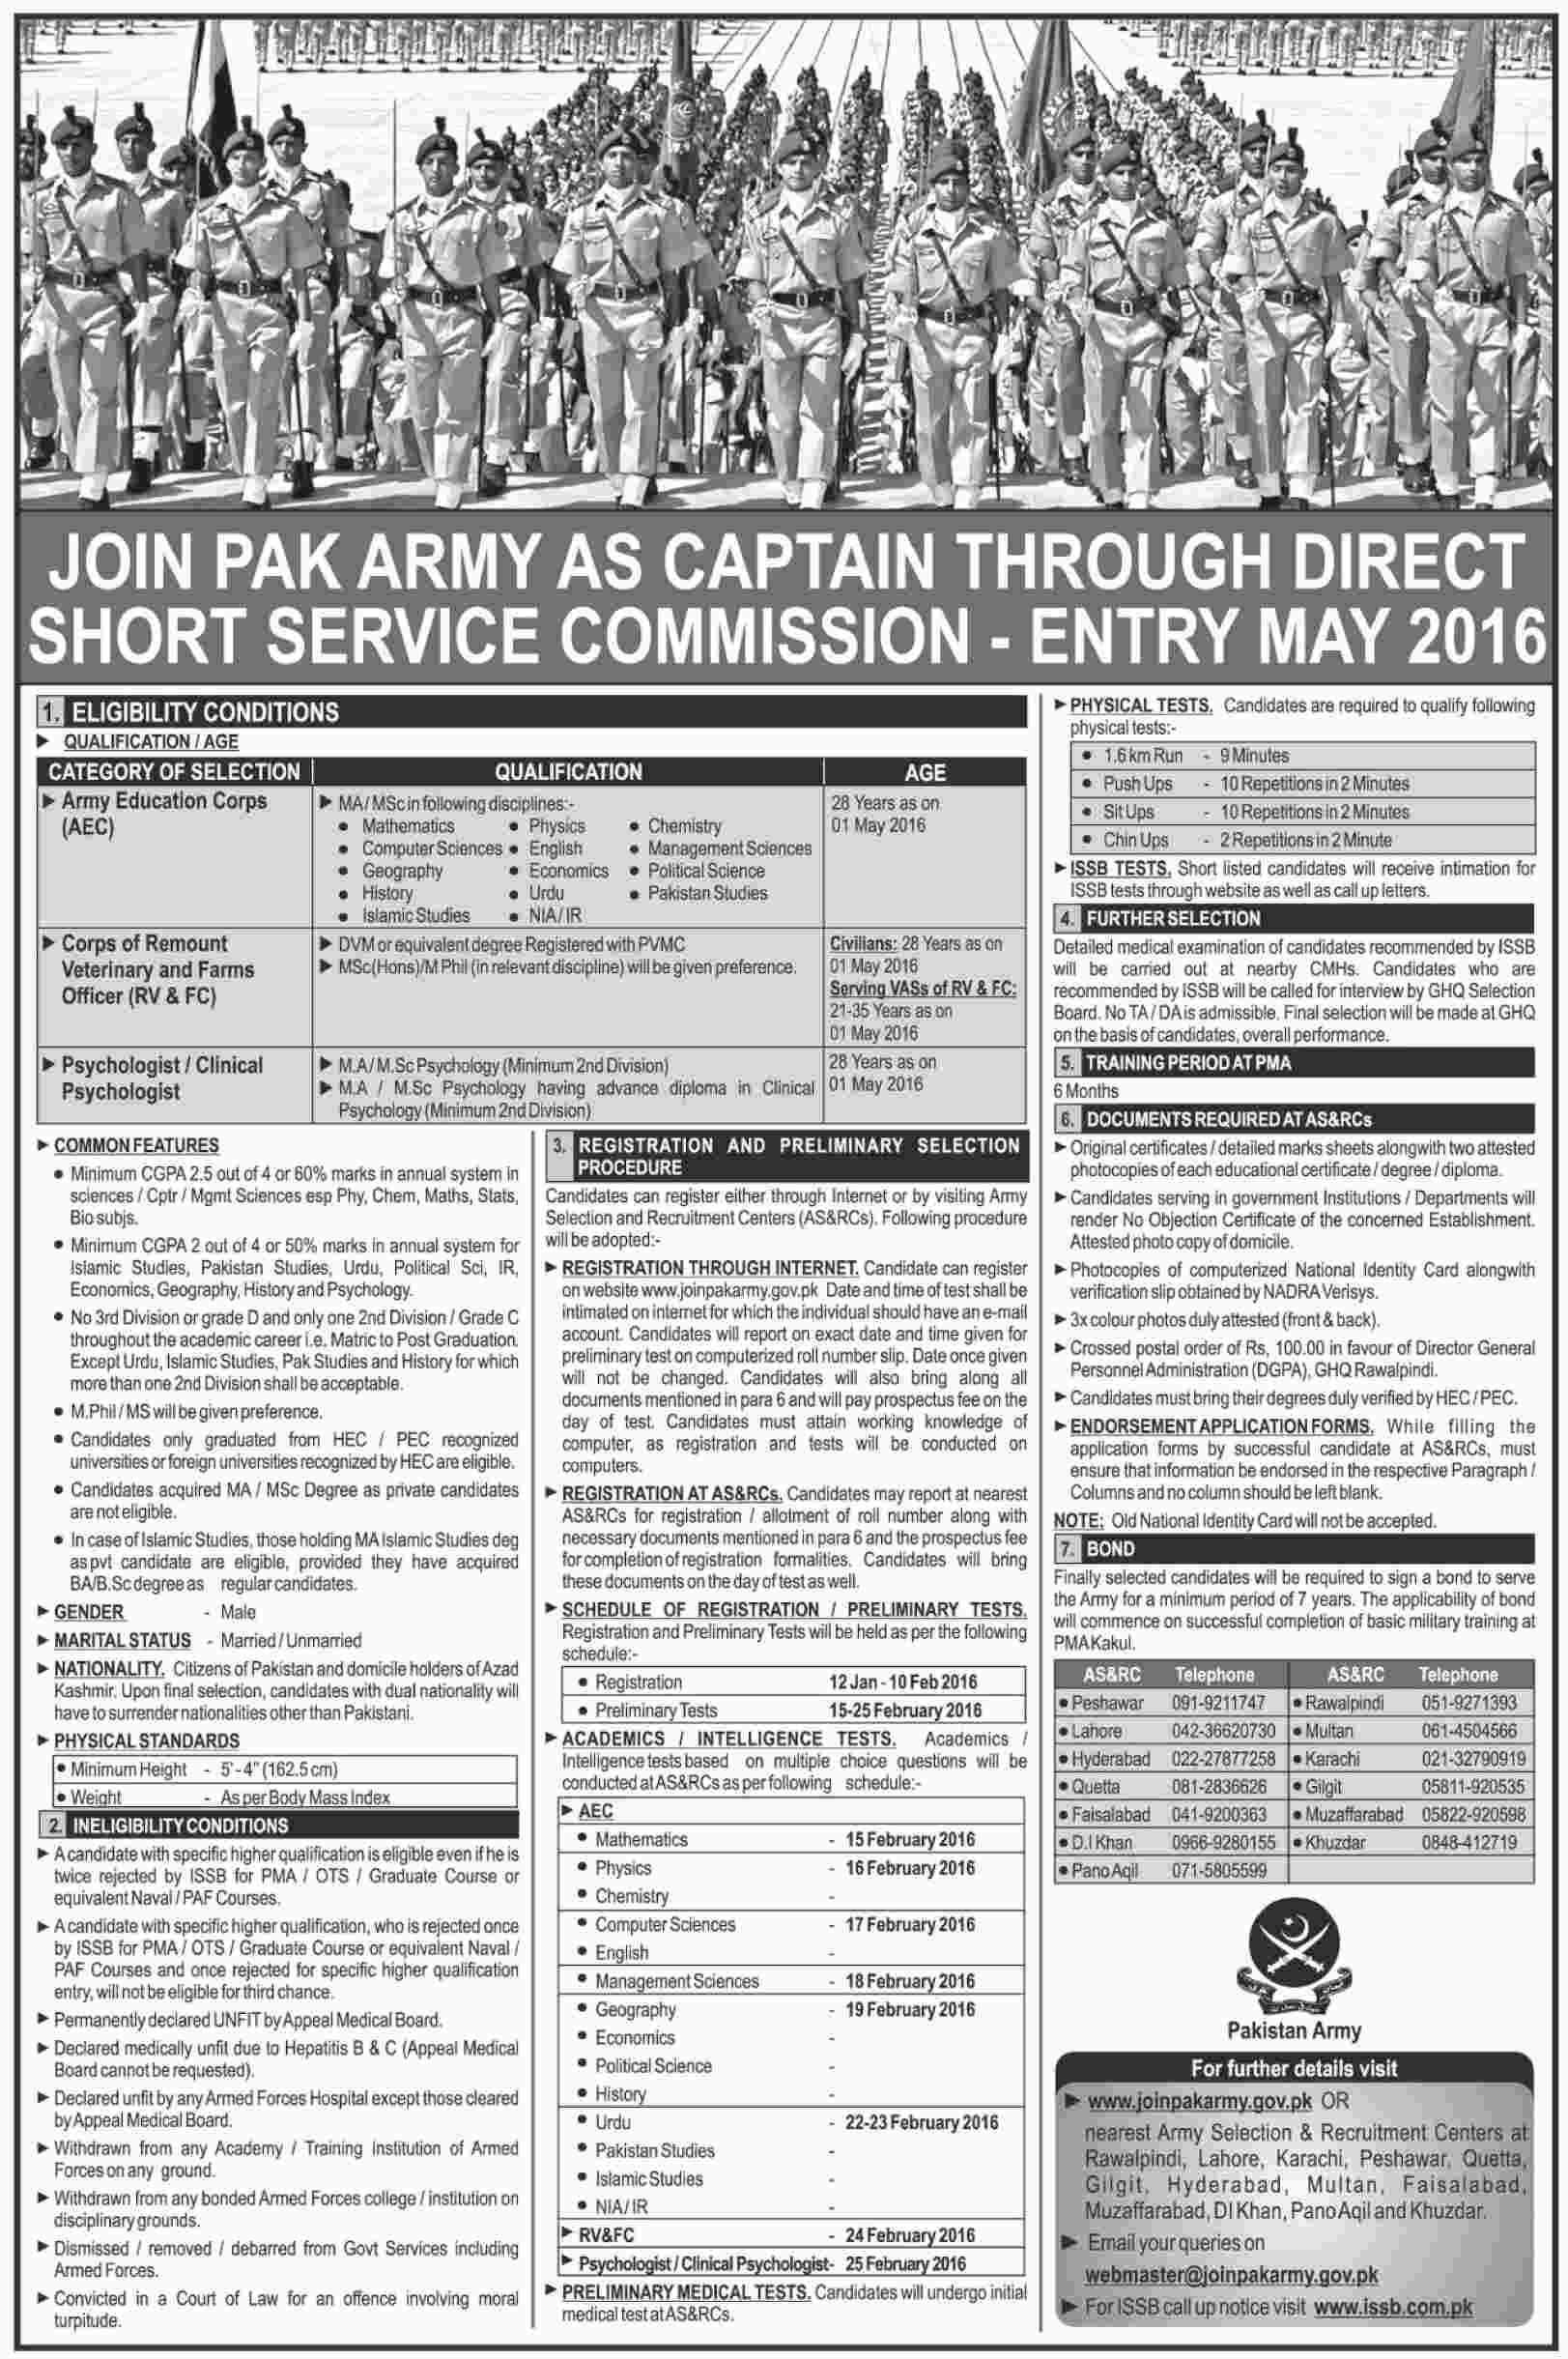 Join Pakistan Army Through Direct Short Service Commission 2016